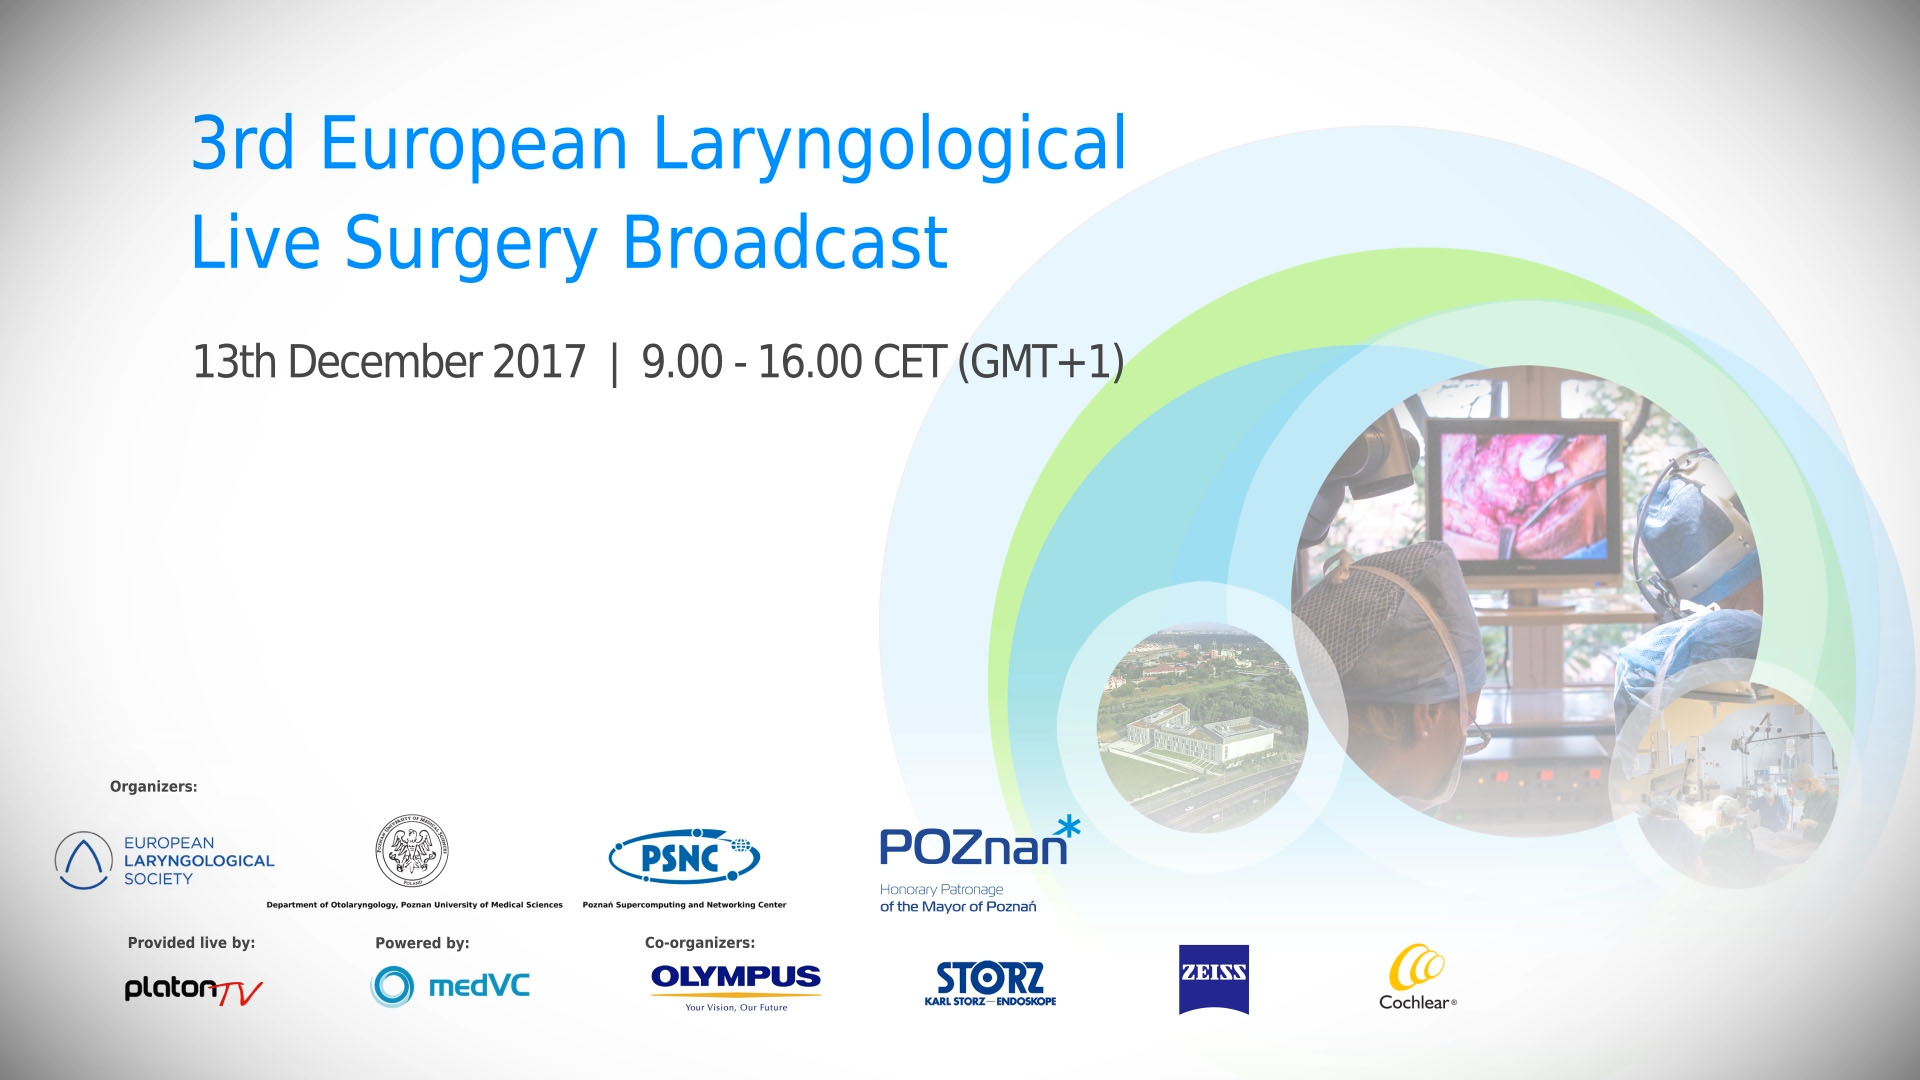 3rd European Laryngological Live Surgery Broadcast